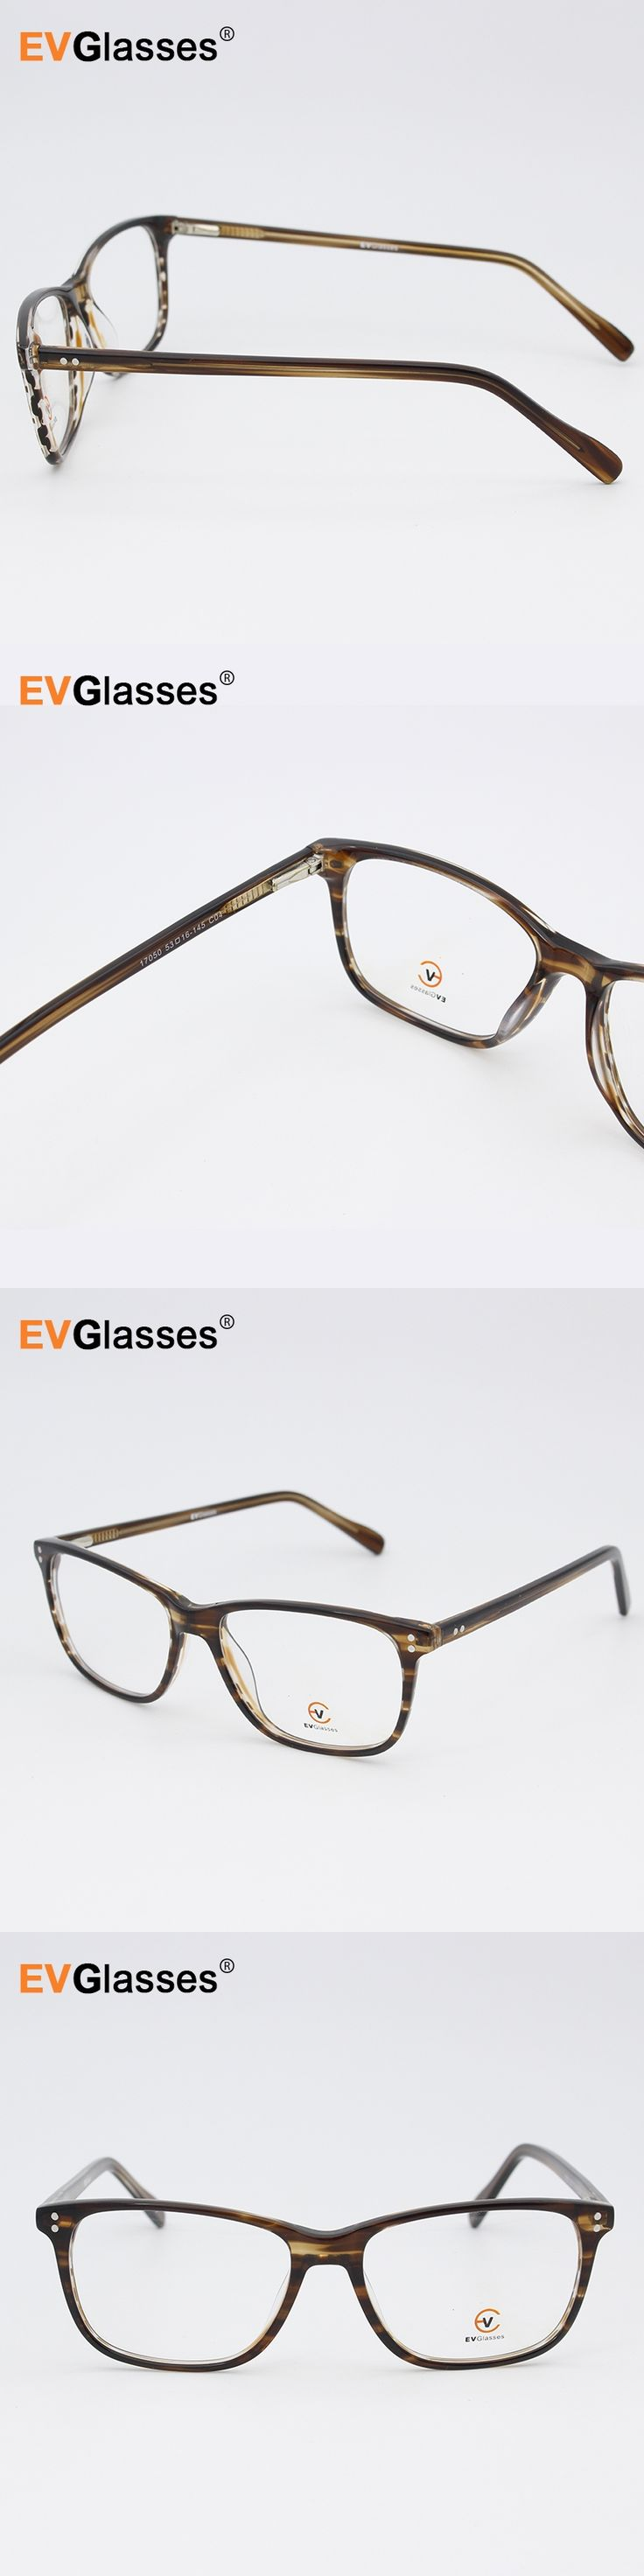 EVGlasses Handmode Acetate men's Optical Glasses Frames Eyeglasses Frame #EV17050